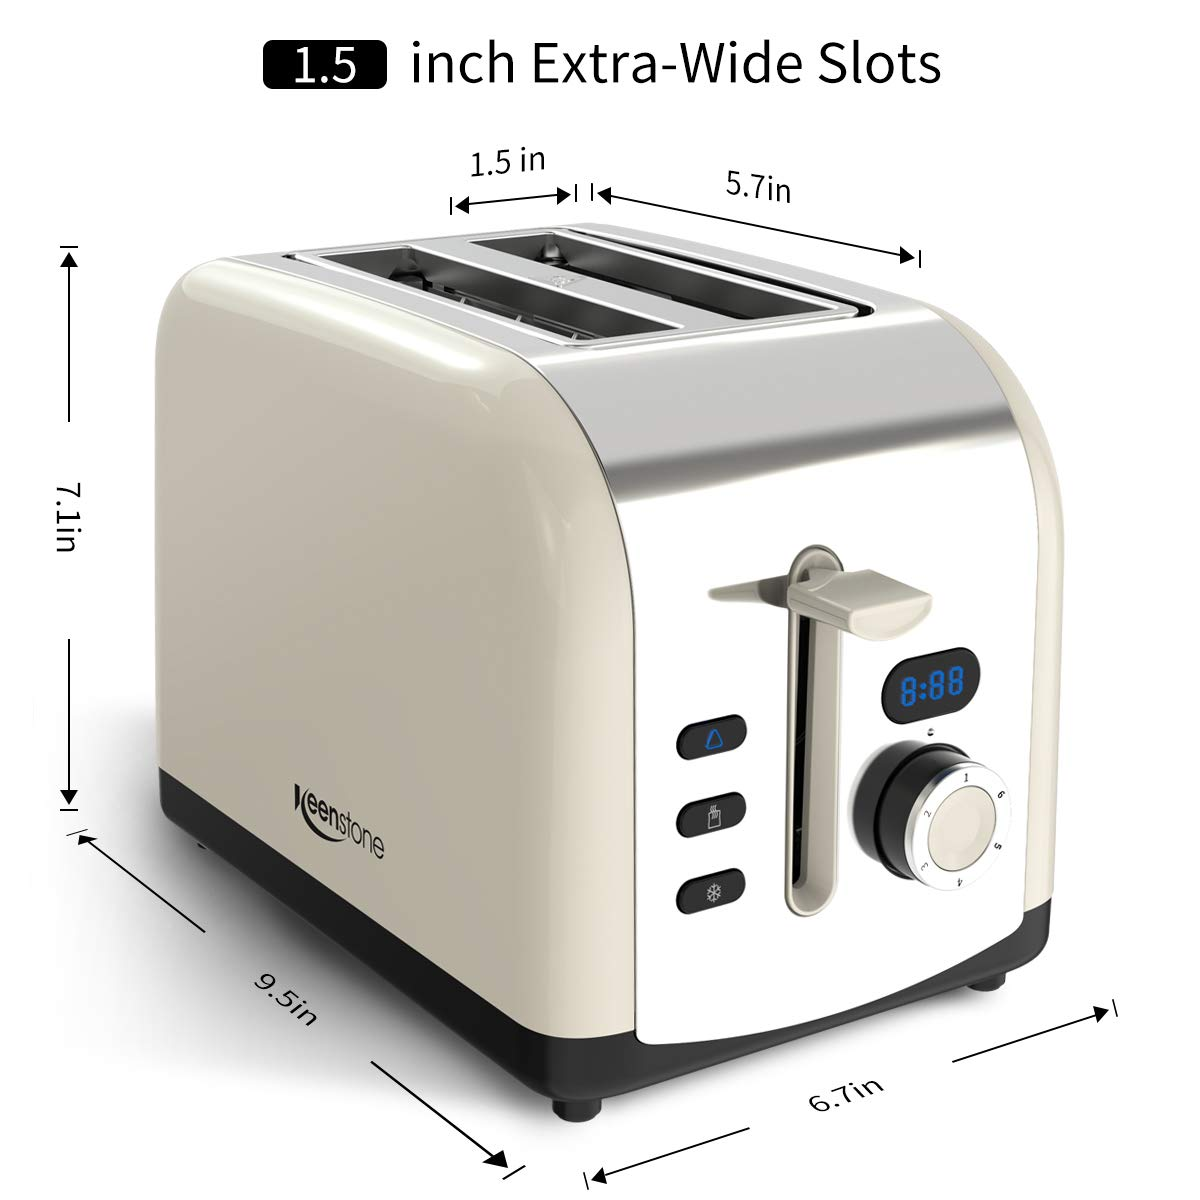 Toaster 2 Slice, Retro LCD Timer Display Stainless Steel Toasters, Extra Wide Slots with Reheat, Cancel, Defrost Function, Cream